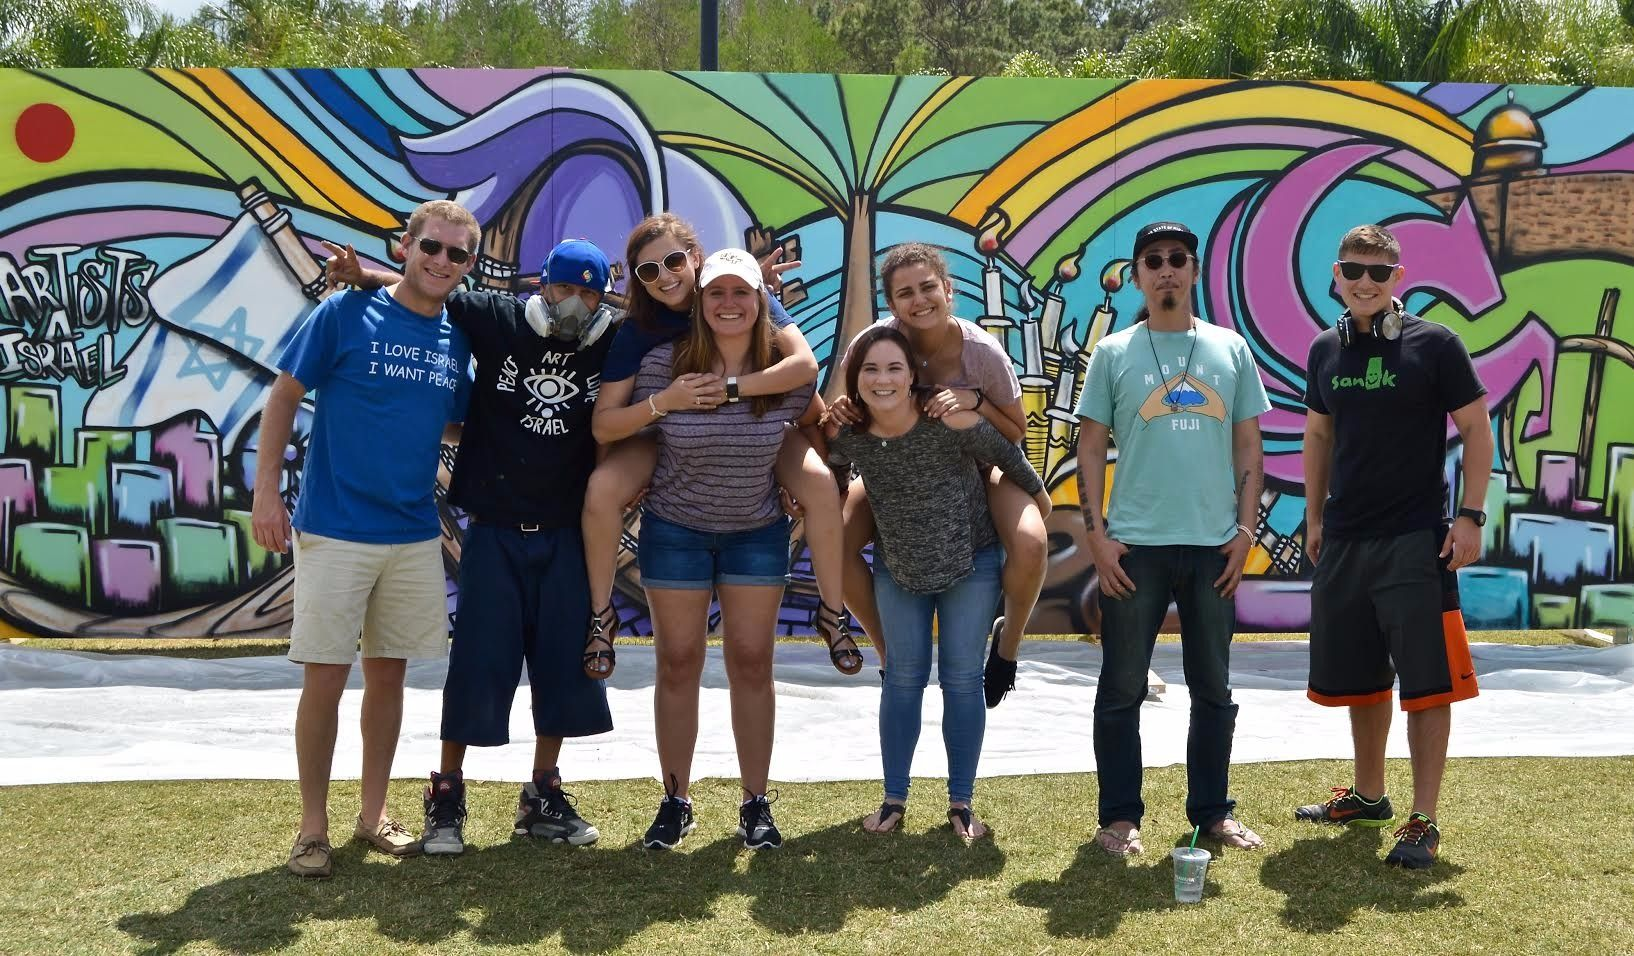 Jewish students at the University of Central Florida